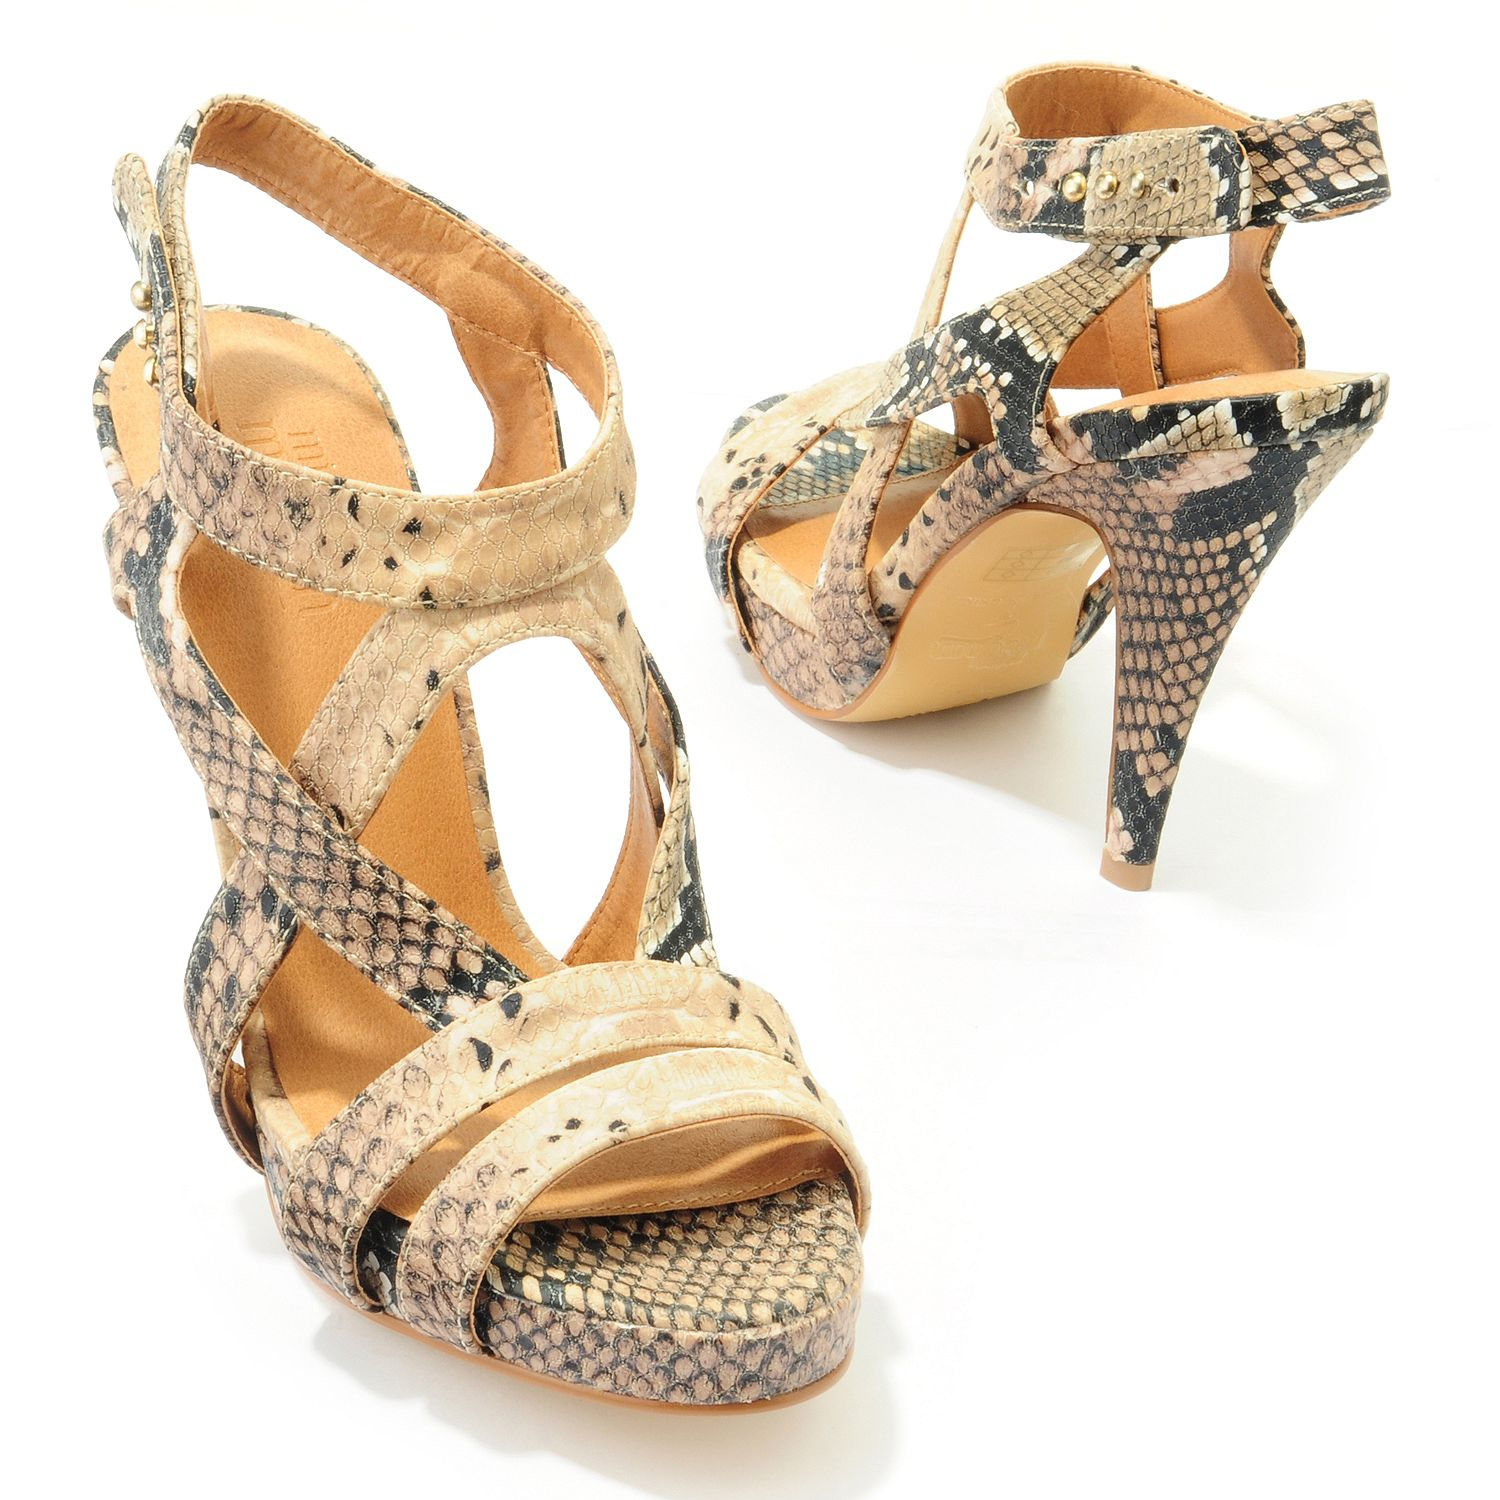 Miss Meghan Snake Print High Heel Sandals Gift Ideas